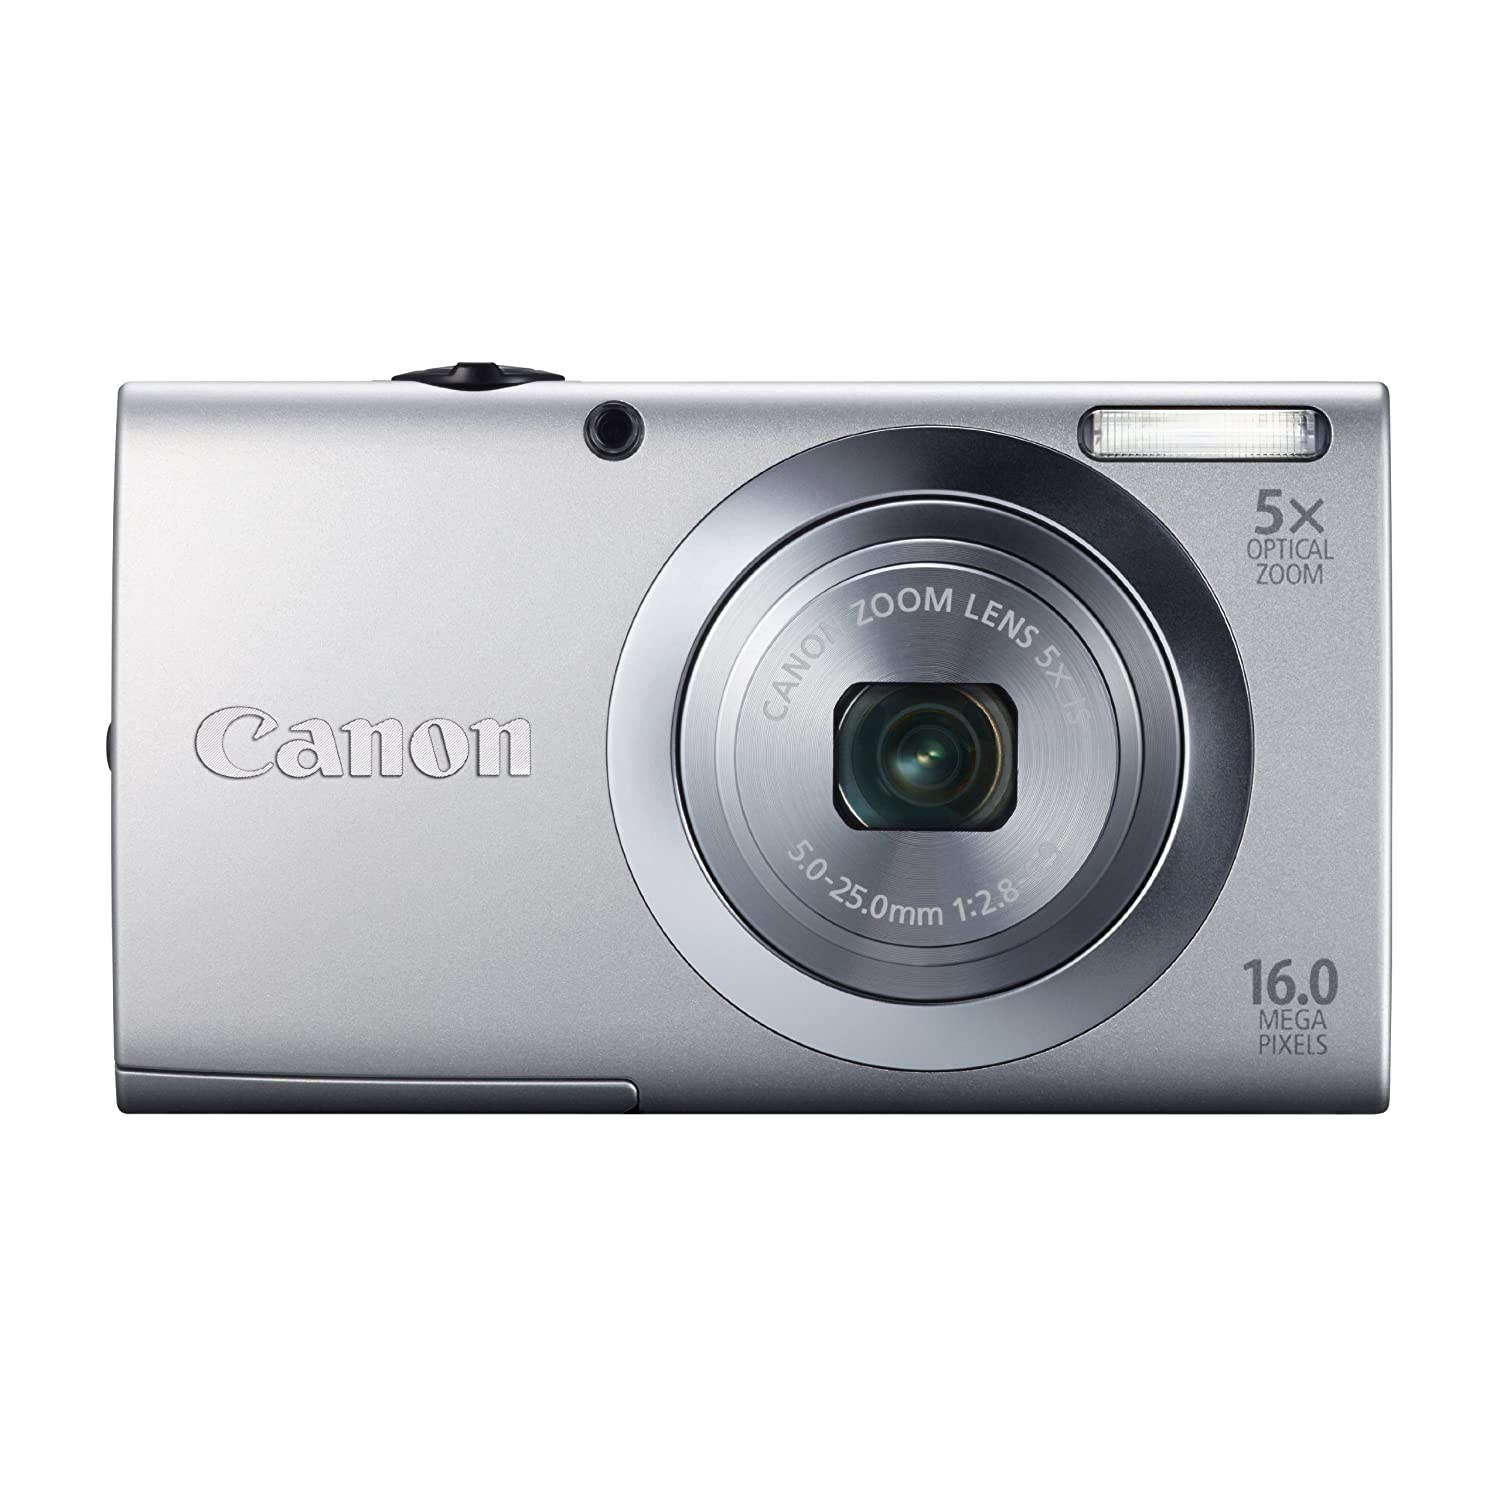 Canon PowerShot A2400 IS 16.0 MP Digital Camera with 5x Optical Image Stabilized Zoom 28mm Wide-Angle Lens with 720p Full HD Video Recording and 2.7-Inch Touch Panel LCD